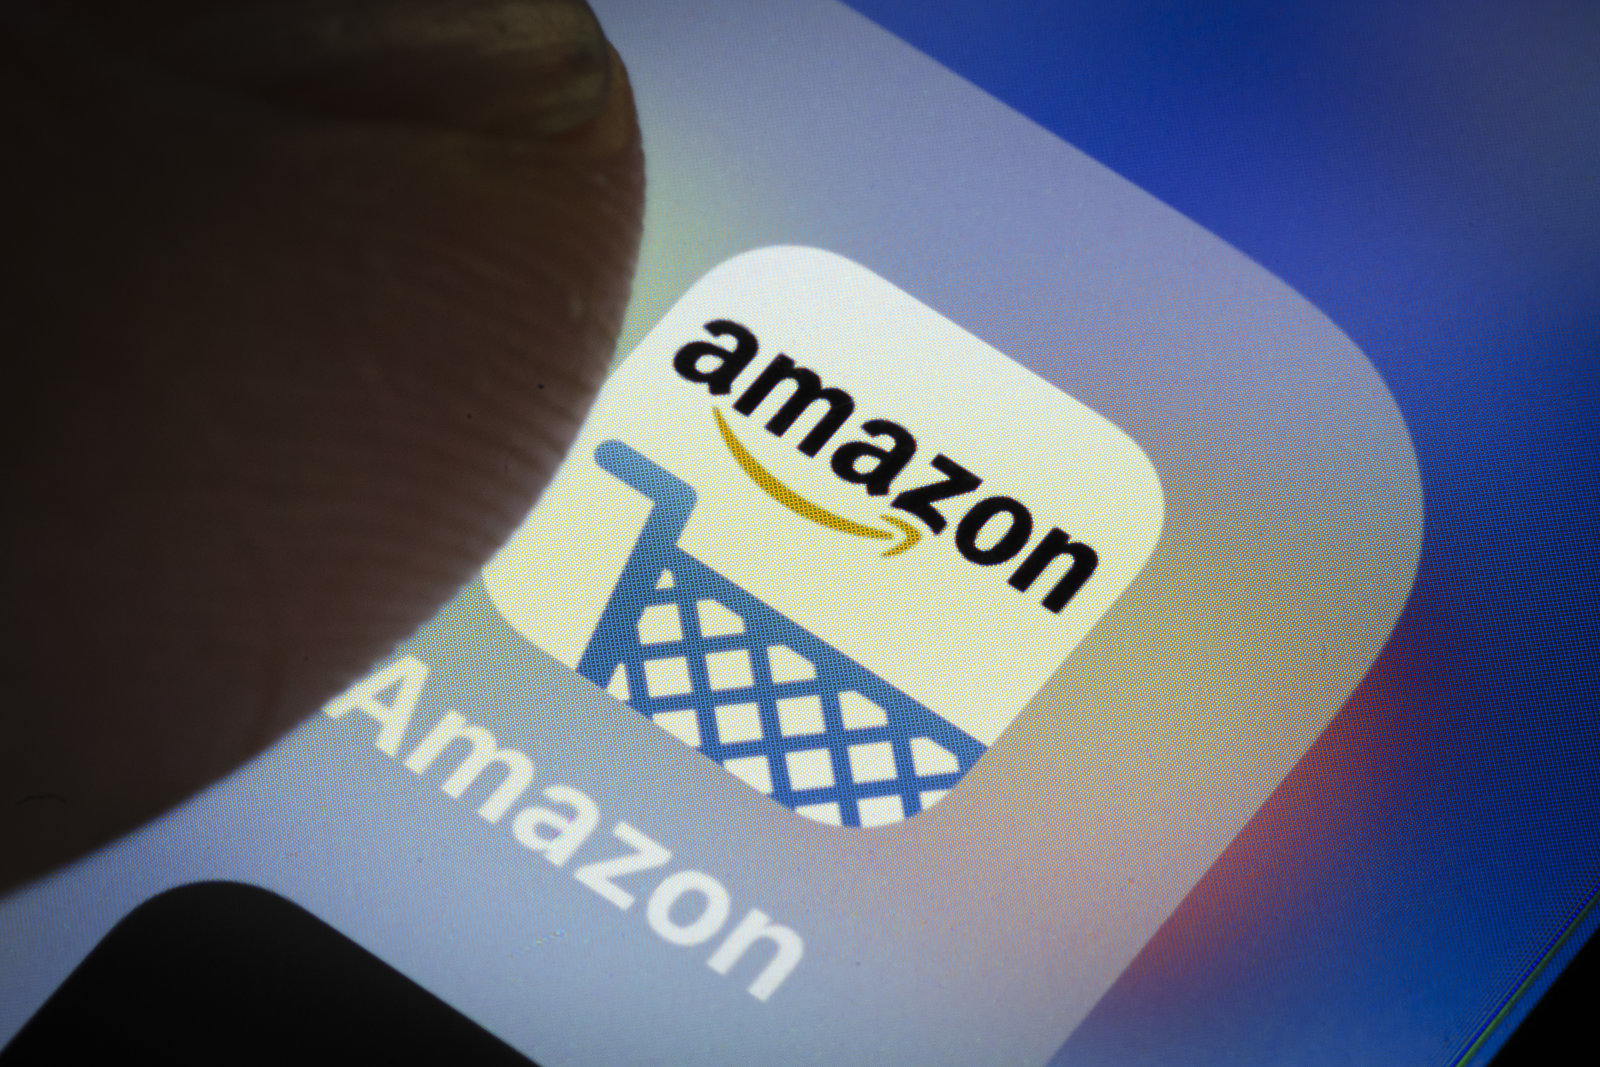 Berlin, Germany - March 20: In this photo illustration the app of American electronic commerce and cloud computing company amazon is displayed on a smartphone on March 20, 2018 in Berlin, Germany. (Photo Illustration by Thomas Trutschel/Photothek via Getty Images)